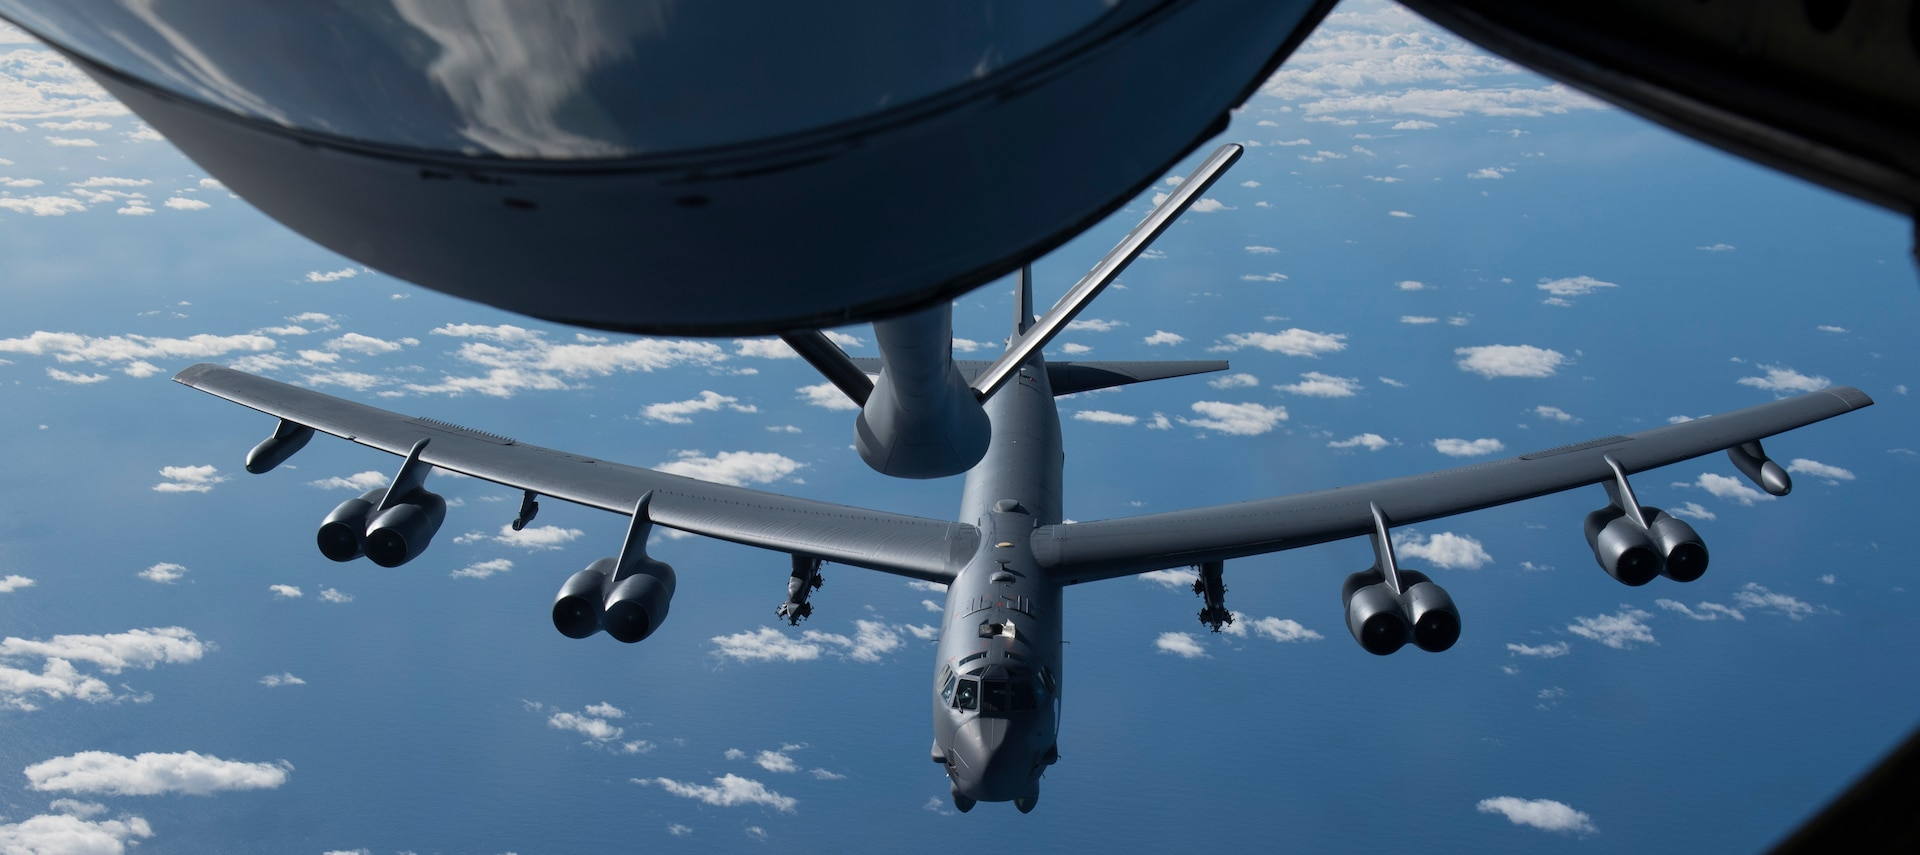 A U.S. Air Force B-52H Stratofortress, assigned to the 69th Expeditionary Bomb Squadron, deployed from Minot Air Force Base, North Dakota, receives fuel from a U.S. Air Force KC-135 Stratotanker assigned to the 191st Air Refuelling Squadron, Wright Air National Guard, Utah, after taking off from Andersen Air Force Base, Guam, Feb. 3, 2020. Continuous Bomber Presence deployments provide opportunities to advance and strengthen alliances, as well as strengthen long-standing military-to-military partnerships. (U.S. Air Force photo Airman 1st Class Helena Owens)